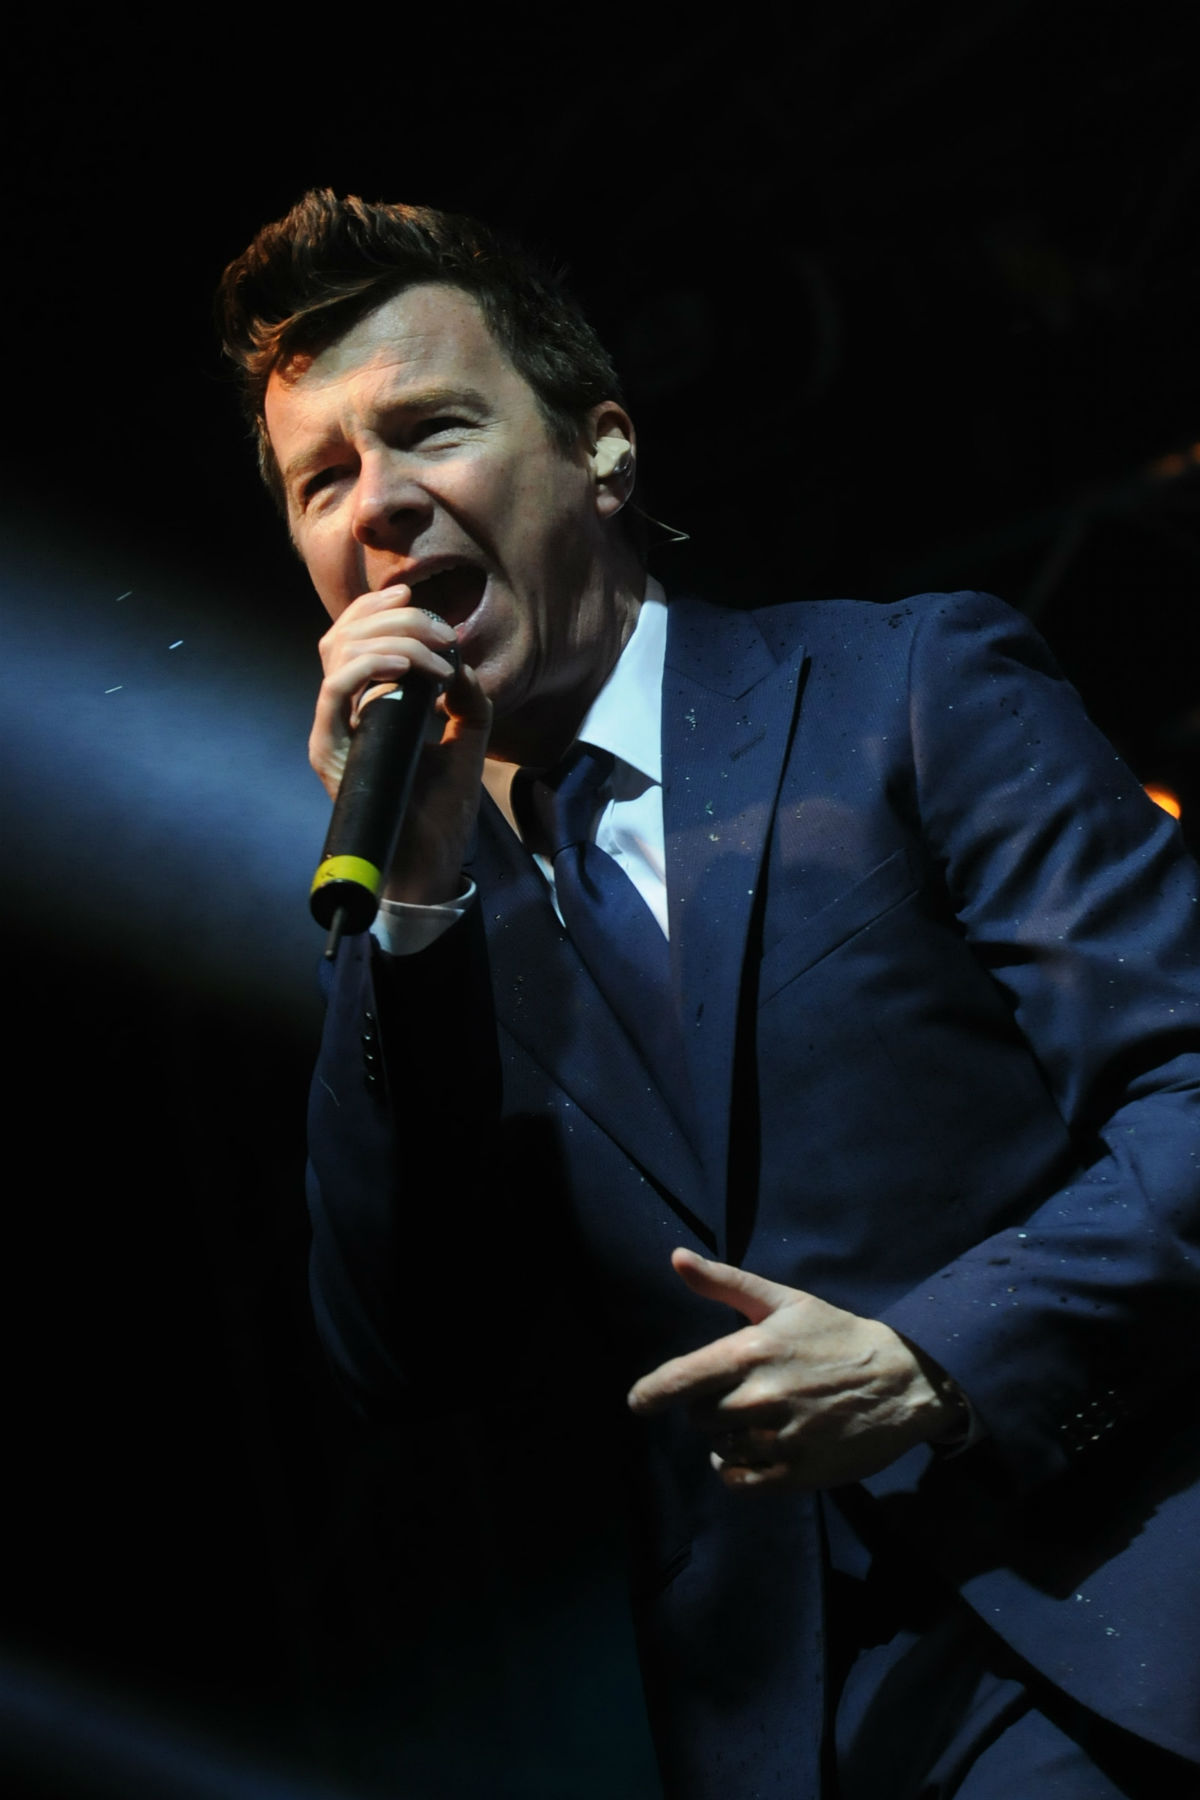 Rick Astley in action